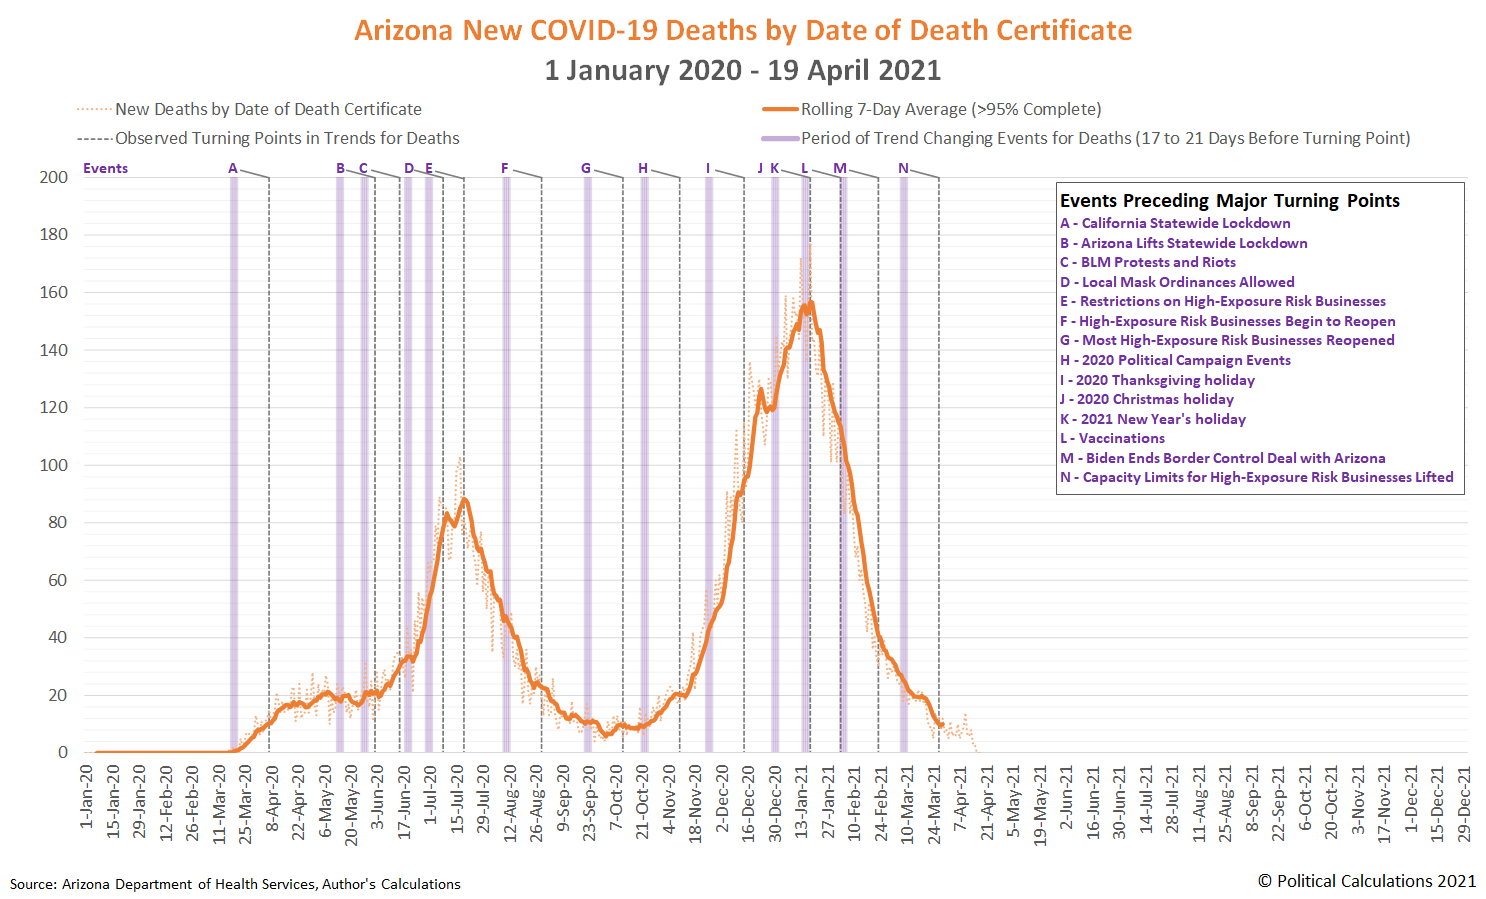 Arizona New COVID-19 Deaths by Date of Death Certificate, 1 January 2020 - 19 April 2021